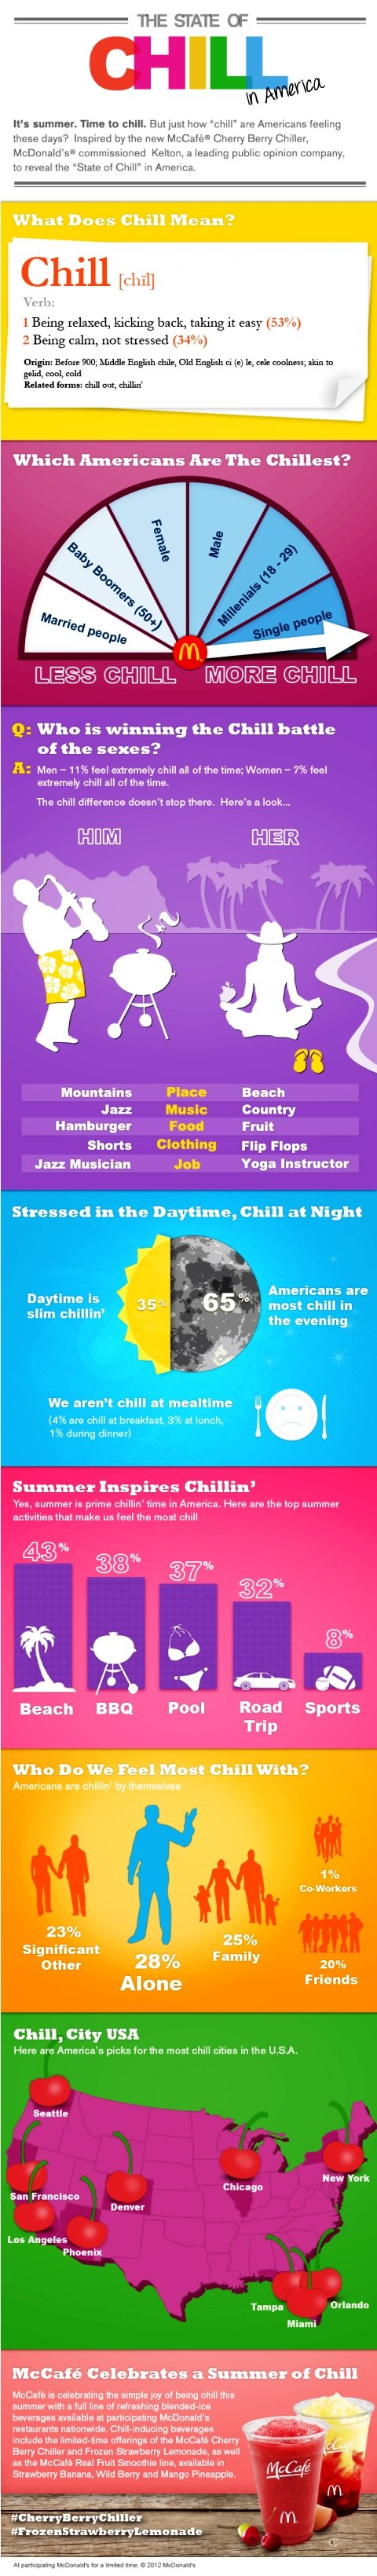 The state of chill in America #infographic